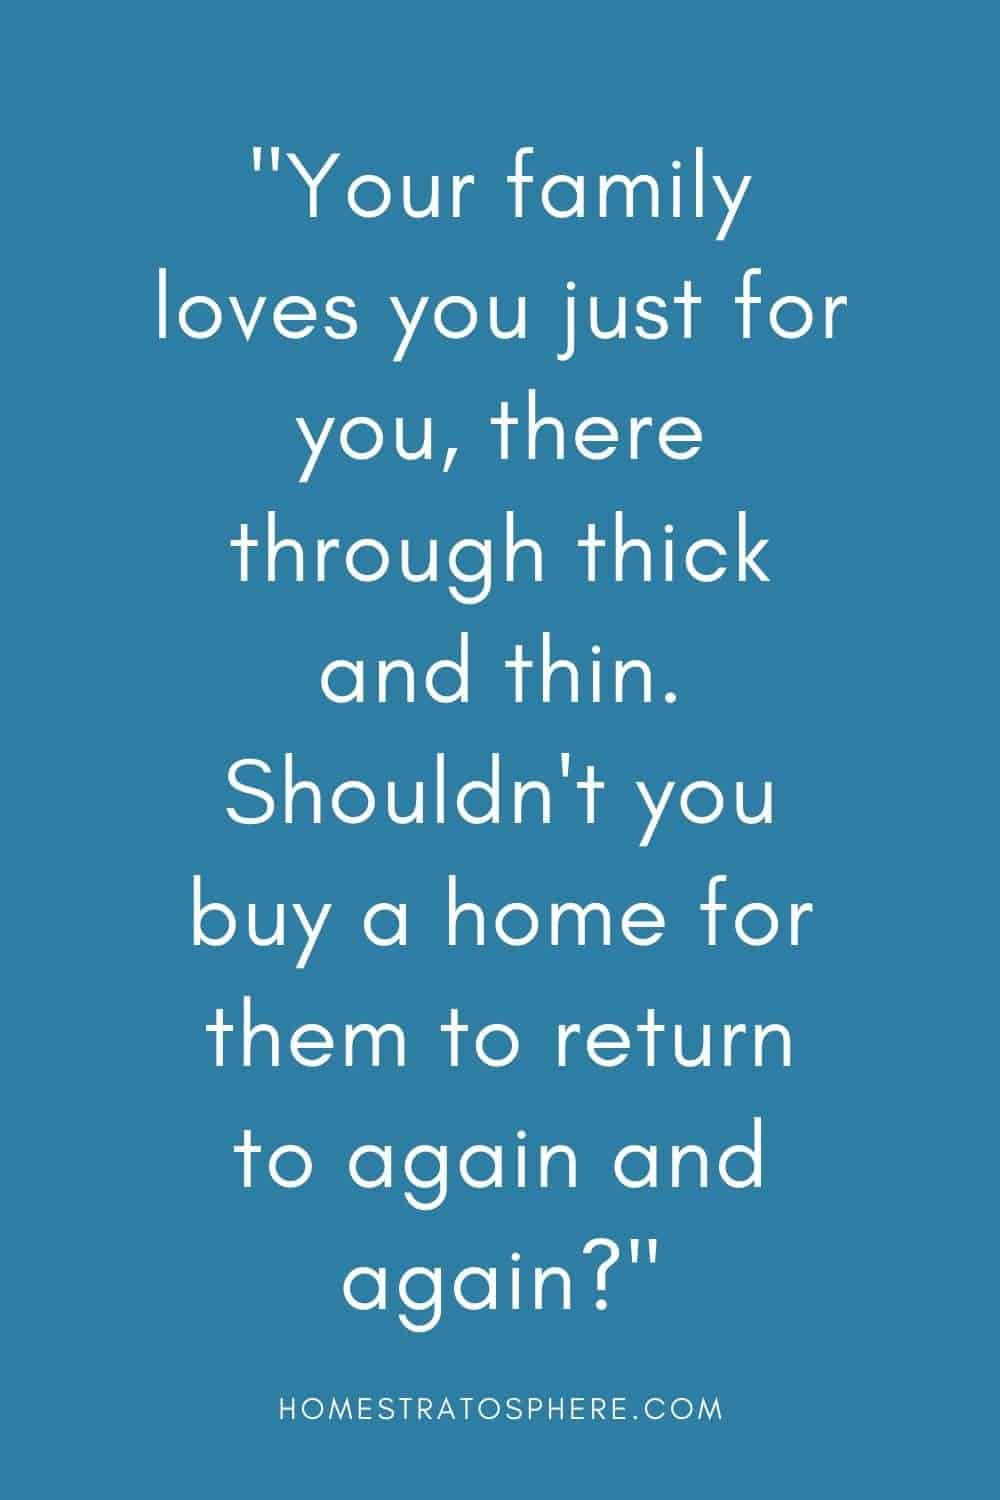 """Your family loves you just for you, there through thick and thin. Shouldn't you buy a home for them to return to again and again?"""